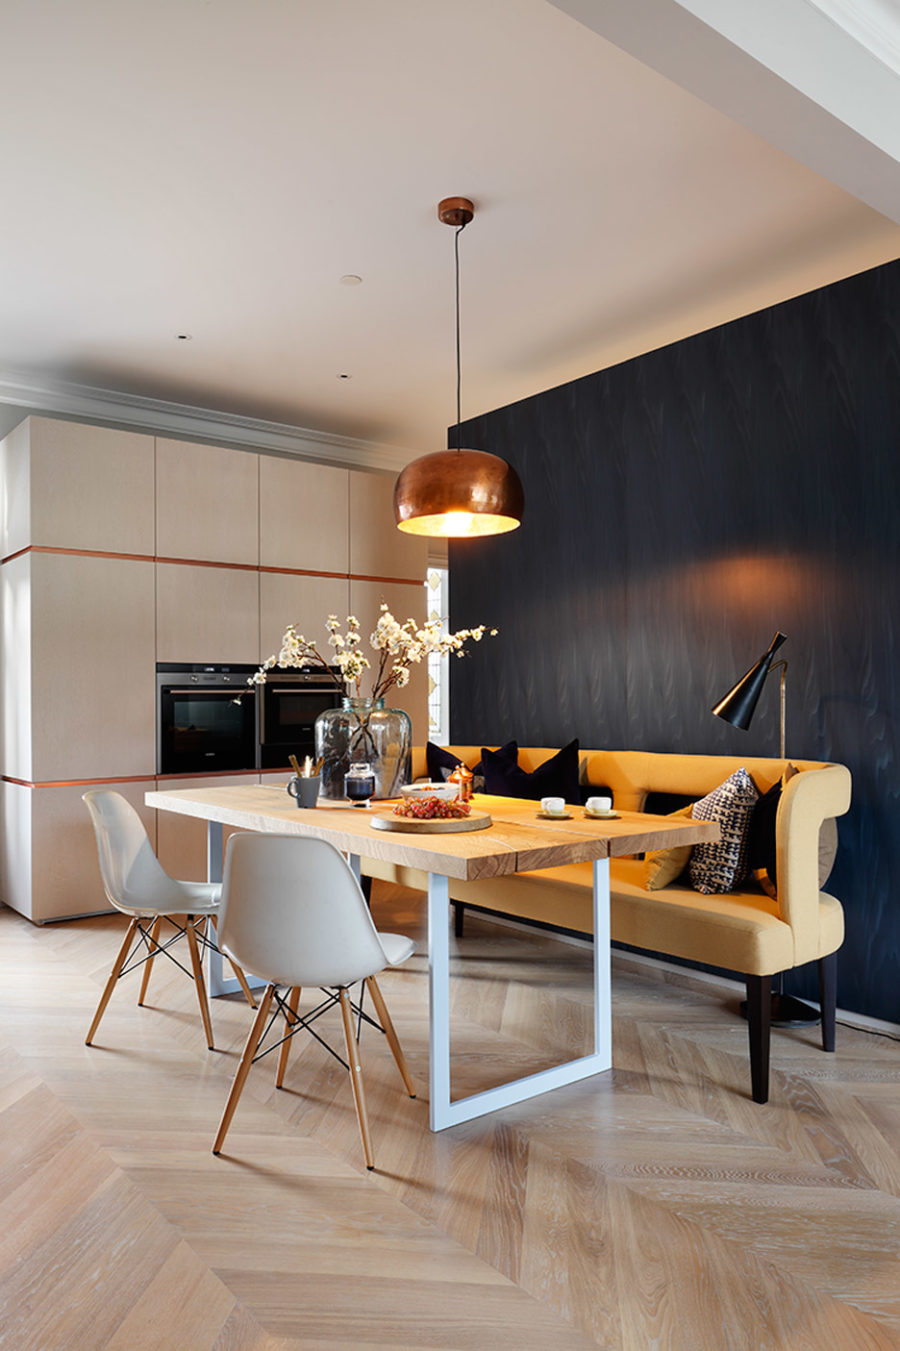 Dining area by MWAI